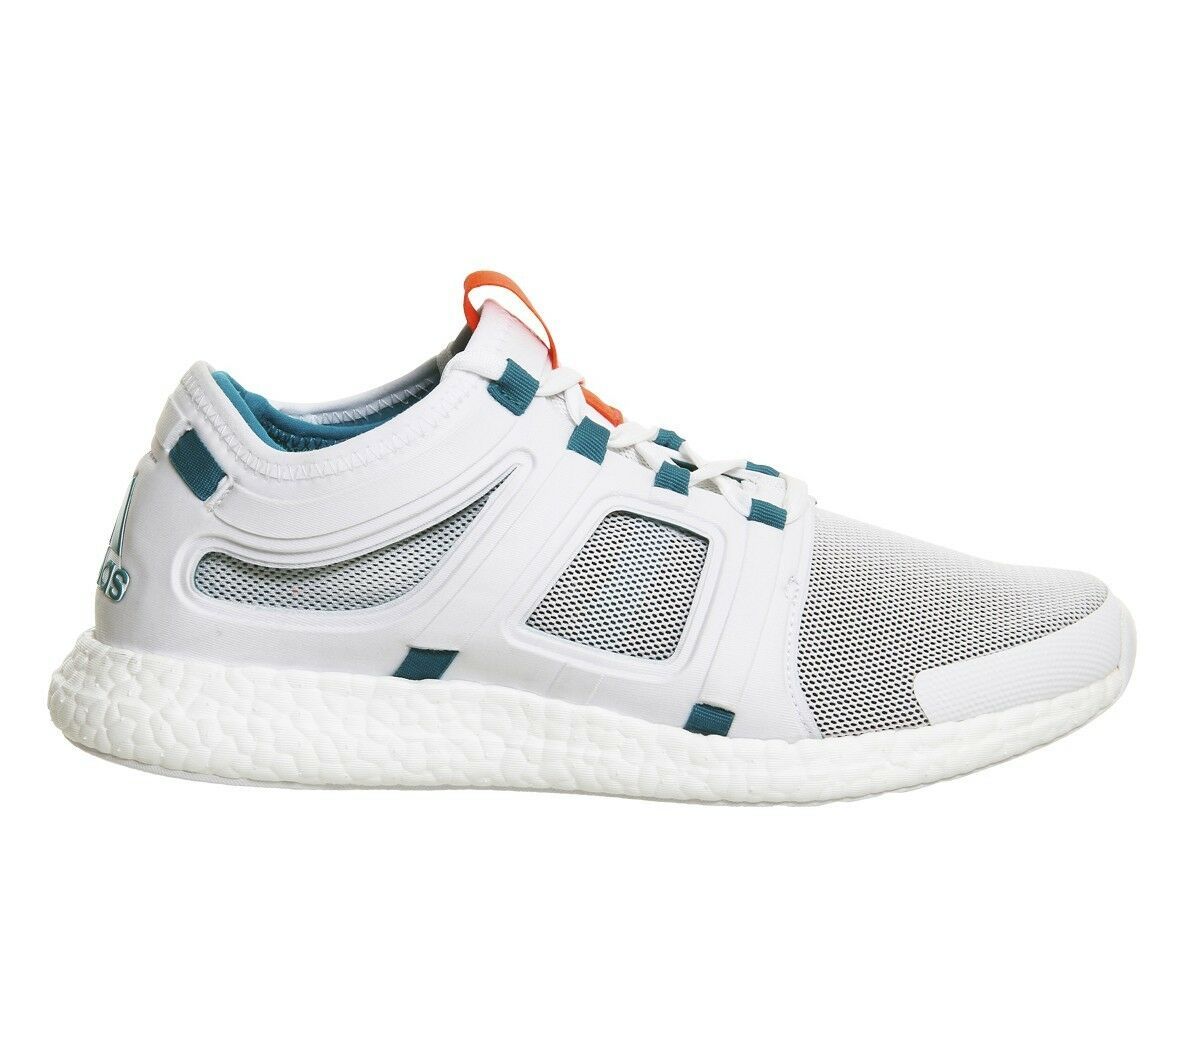 adidas adidas adidas Climachill Rocket Trainers Shoes 6a949d